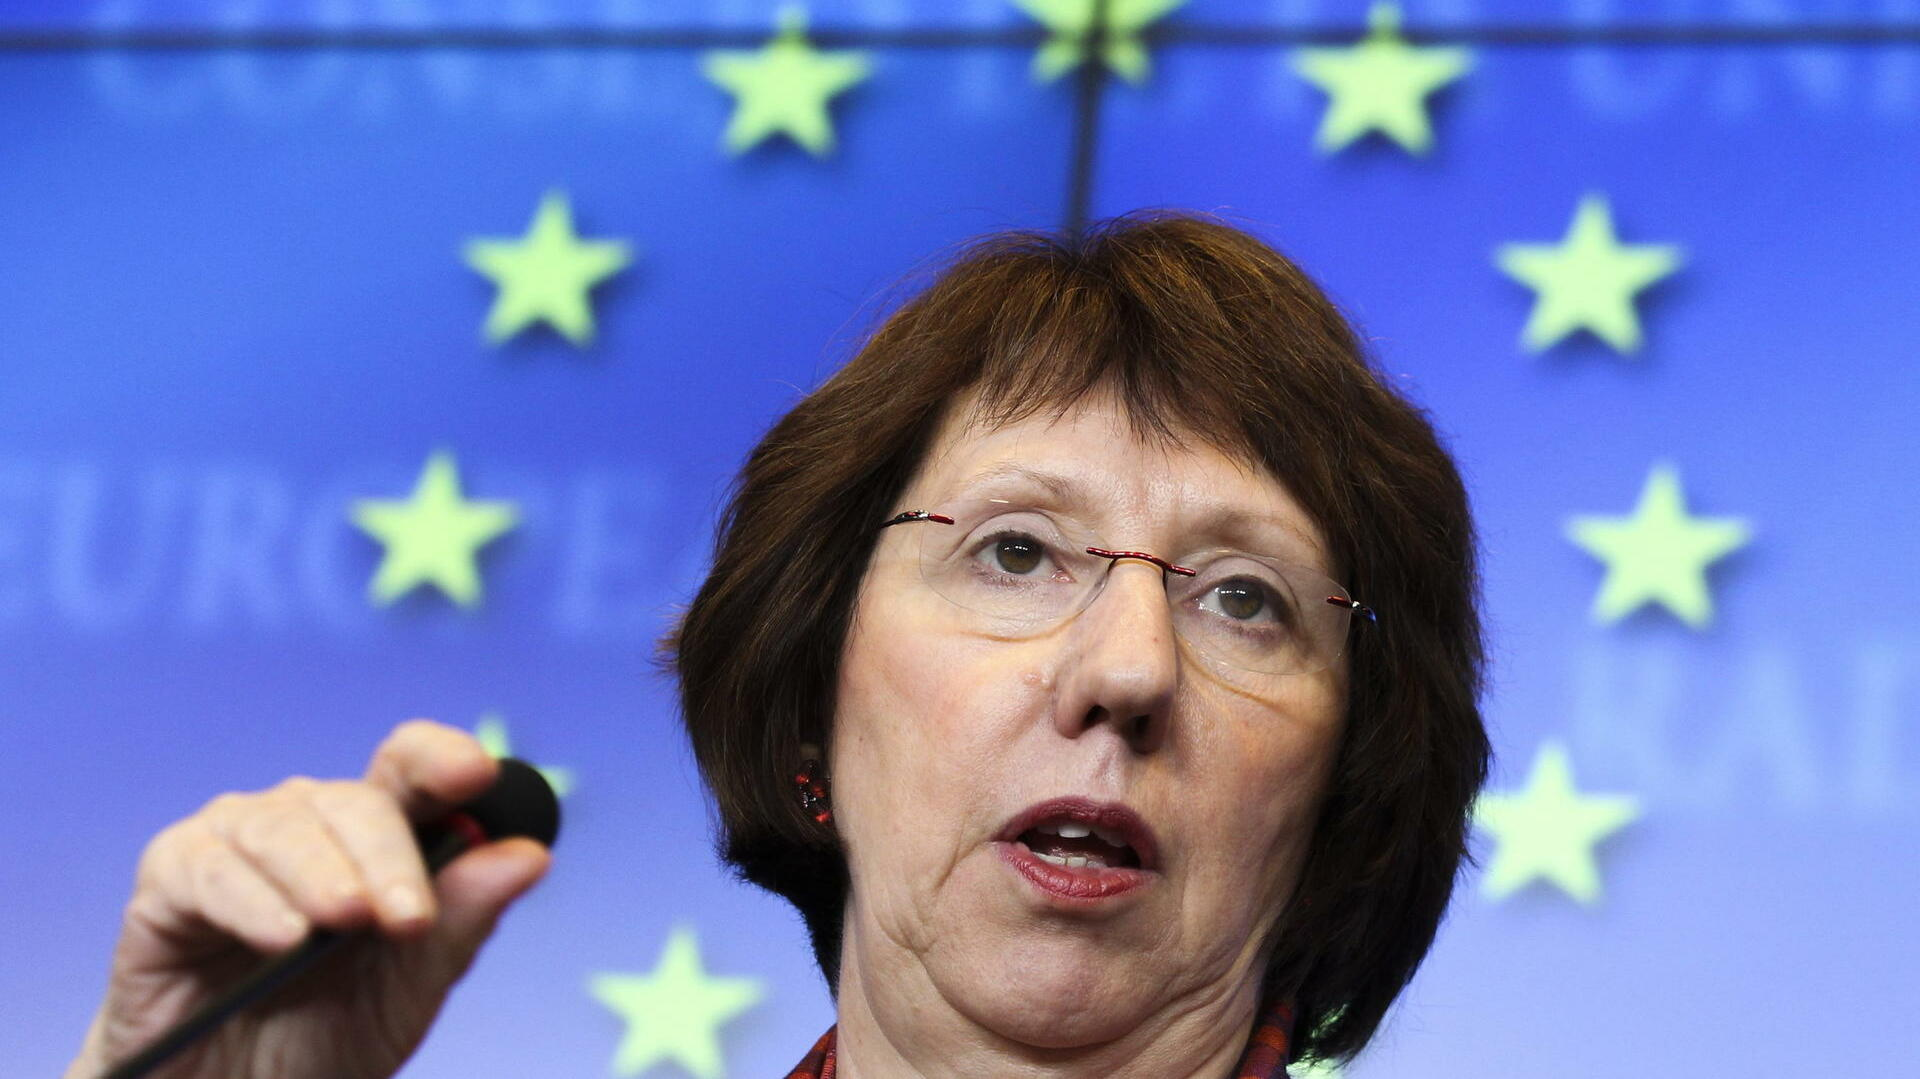 Catherine Ashton Quelle: dpa